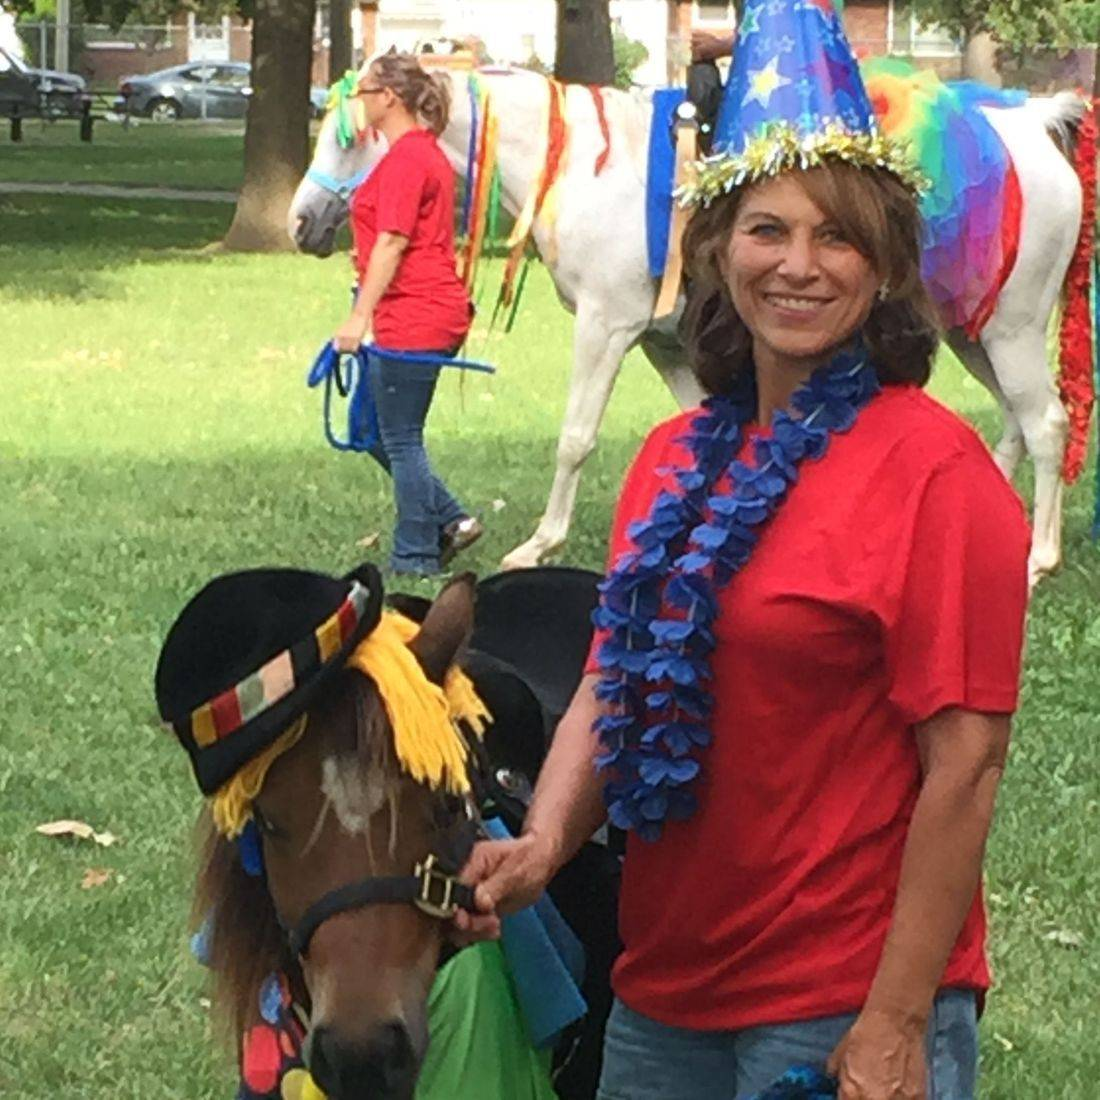 Pony dressed as a clown and a woman with a clown hat on